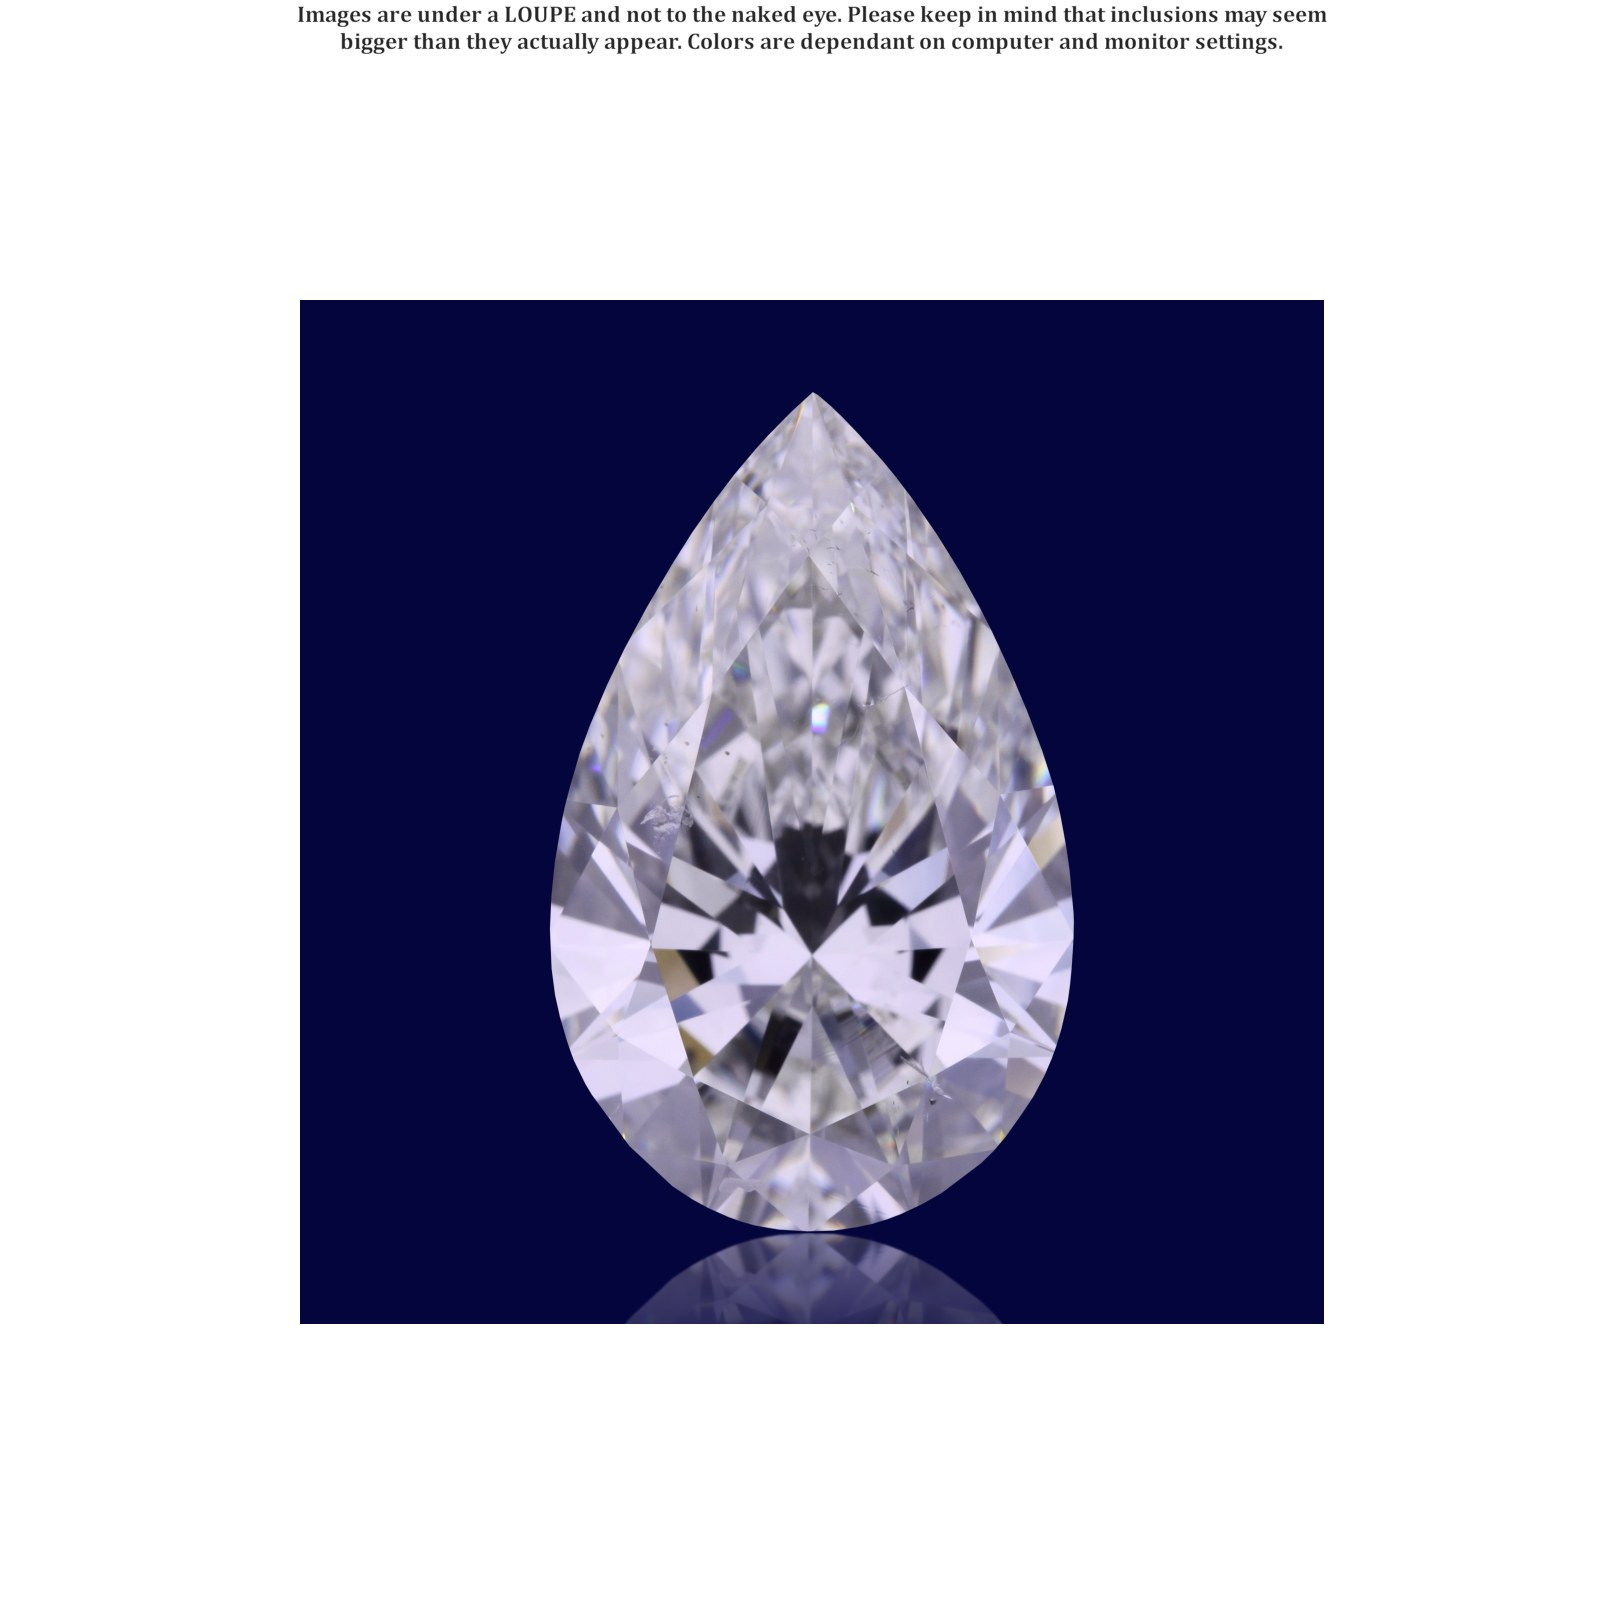 J Mullins Jewelry & Gifts LLC - Diamond Image - .00651